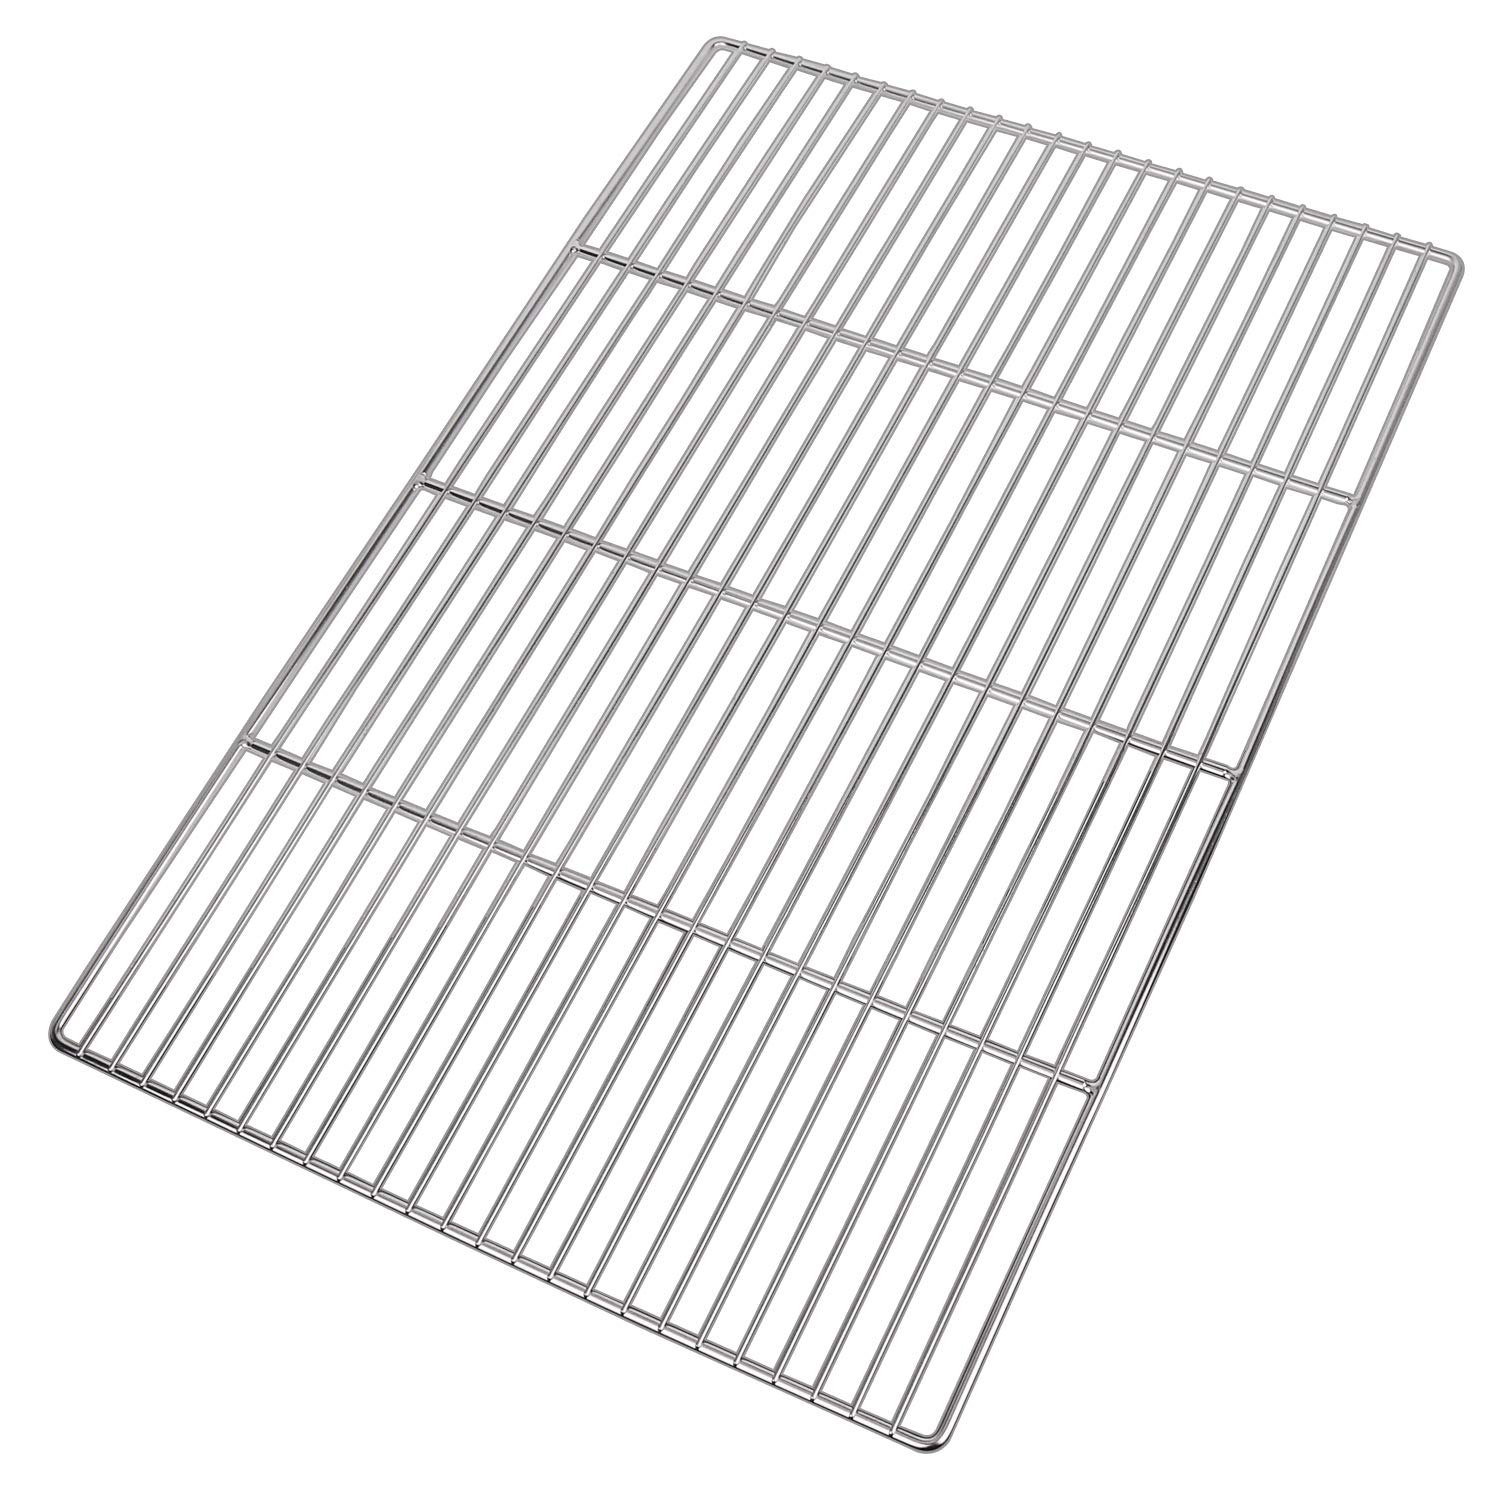 LANEJOY Barbecue Grill Grate